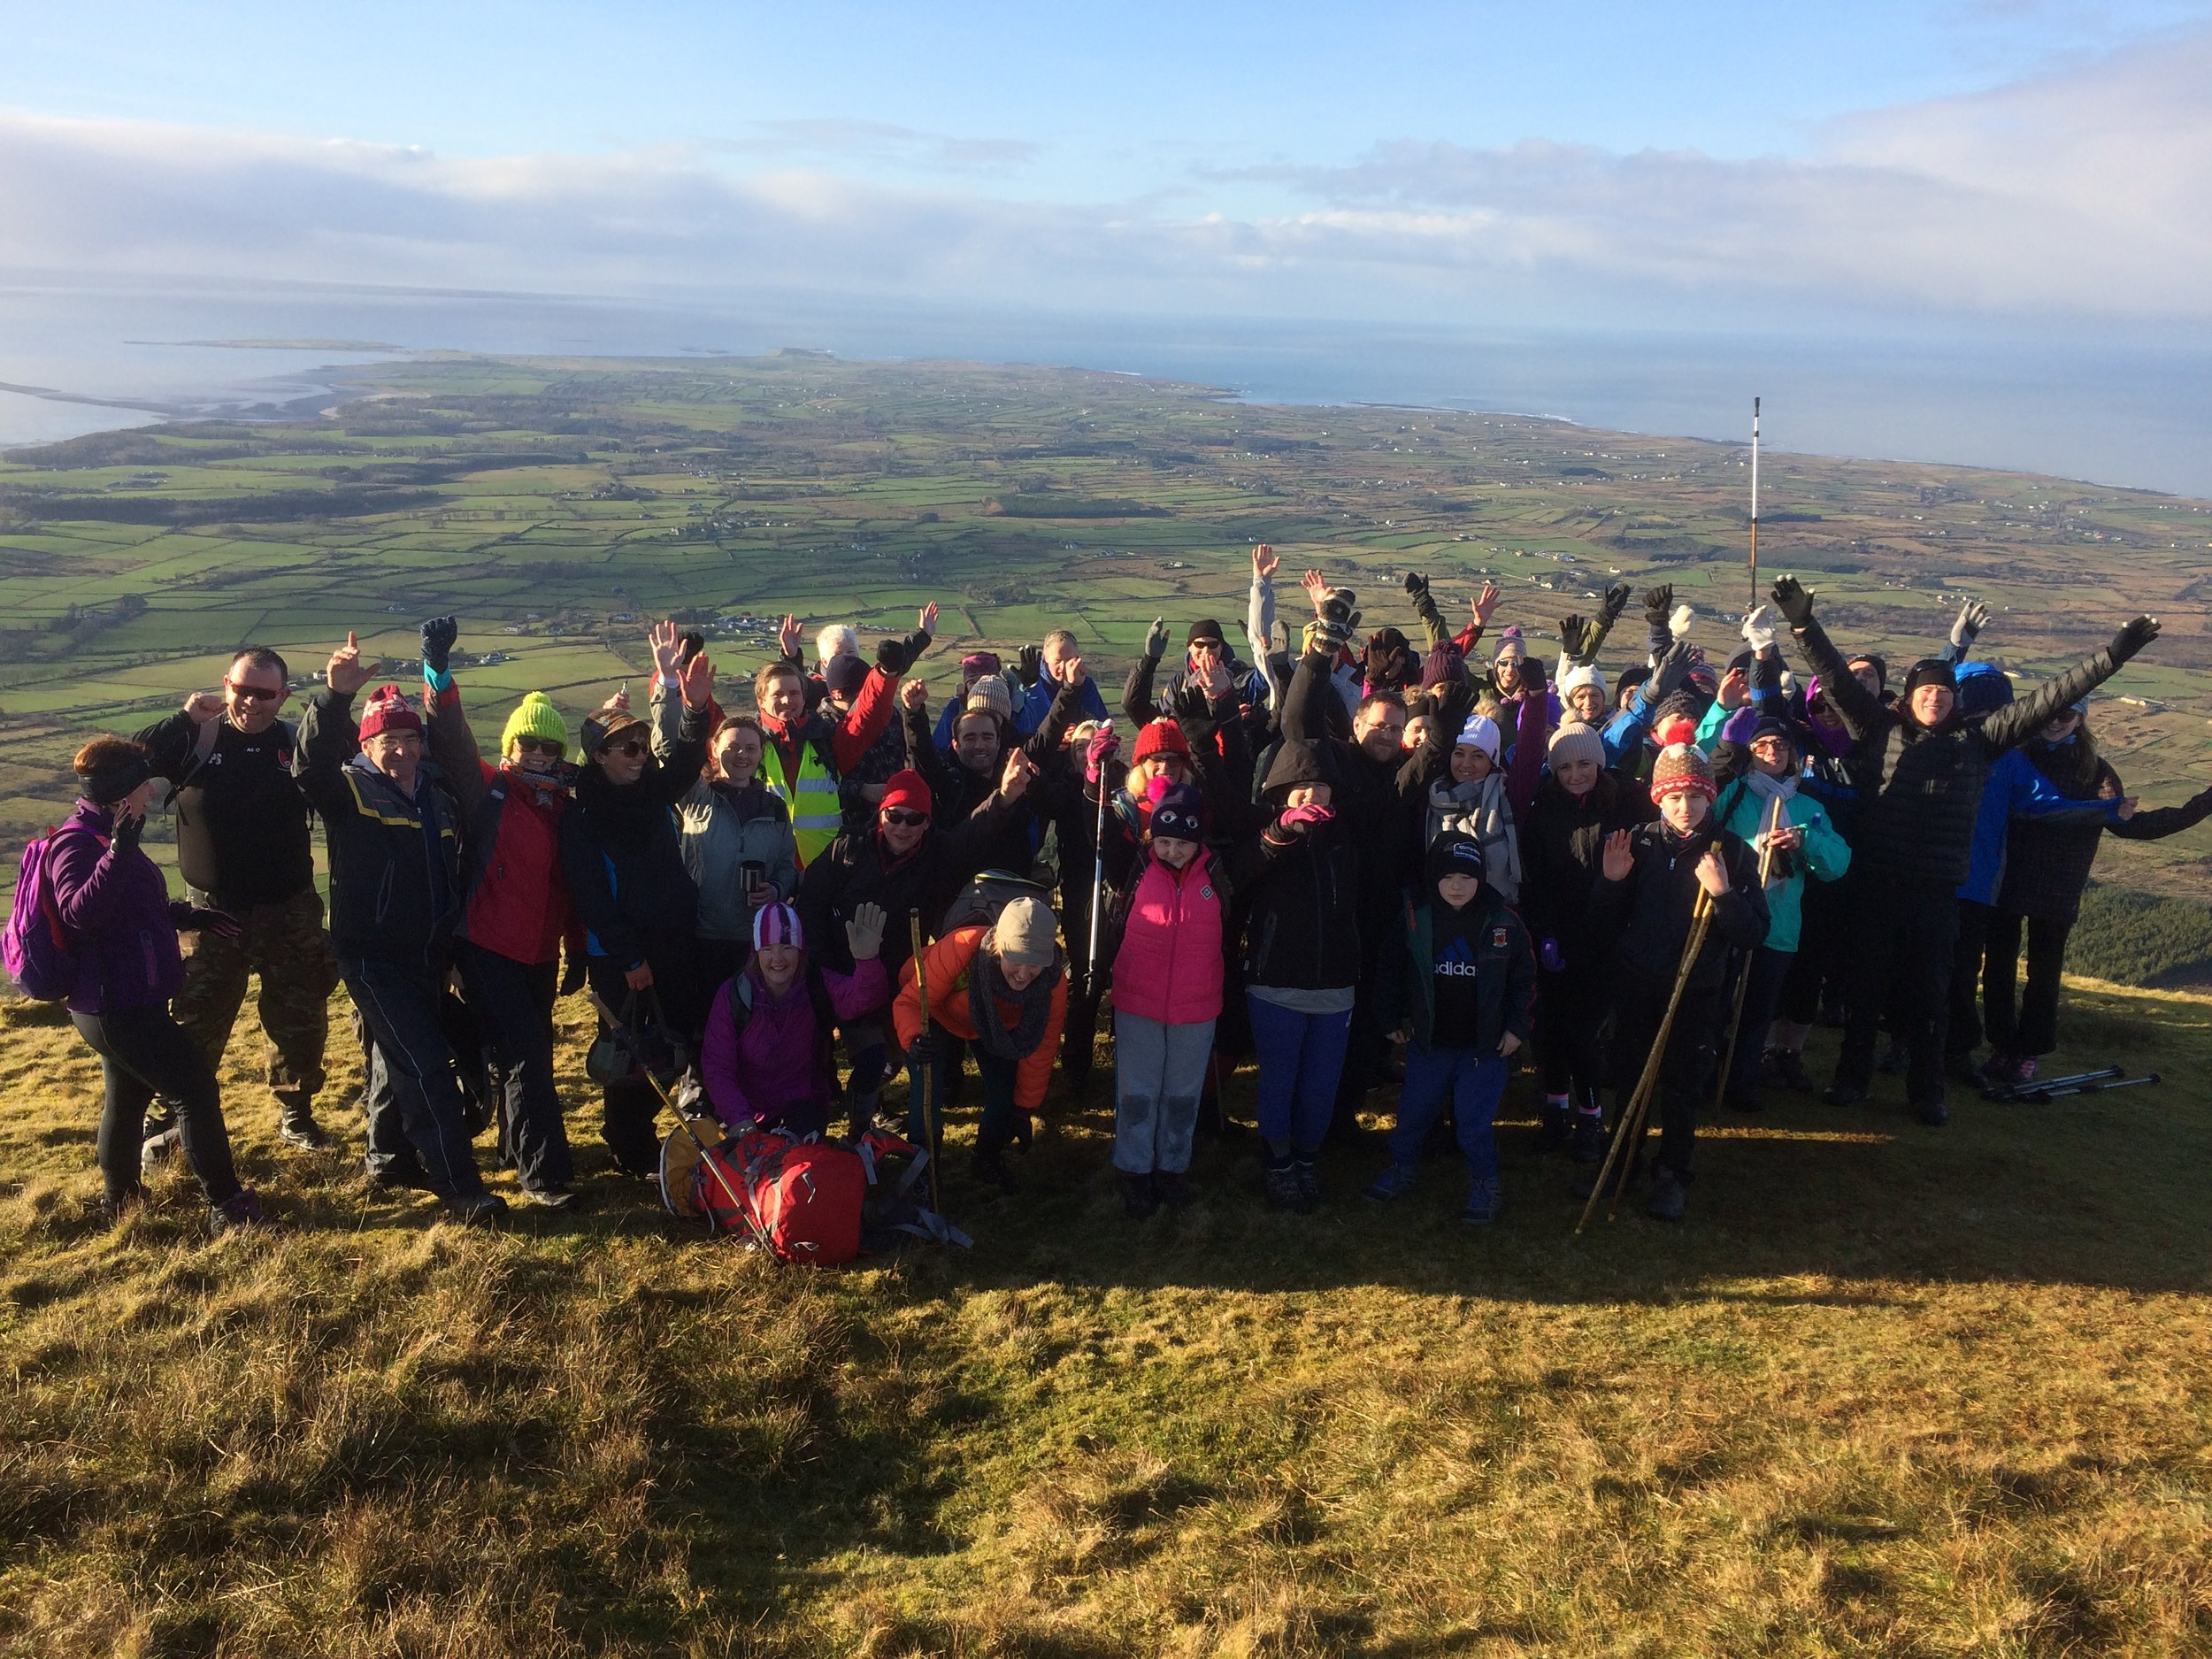 """""""Ring in the new year on a High Note"""" - 2nd January 2017. A happy group of 49 hikers enjoying some beautiful winter sun climbing to the top of Benbulben. A great way to start off the new year with a guided hike with High Hopes Hiking. Happy New Year."""